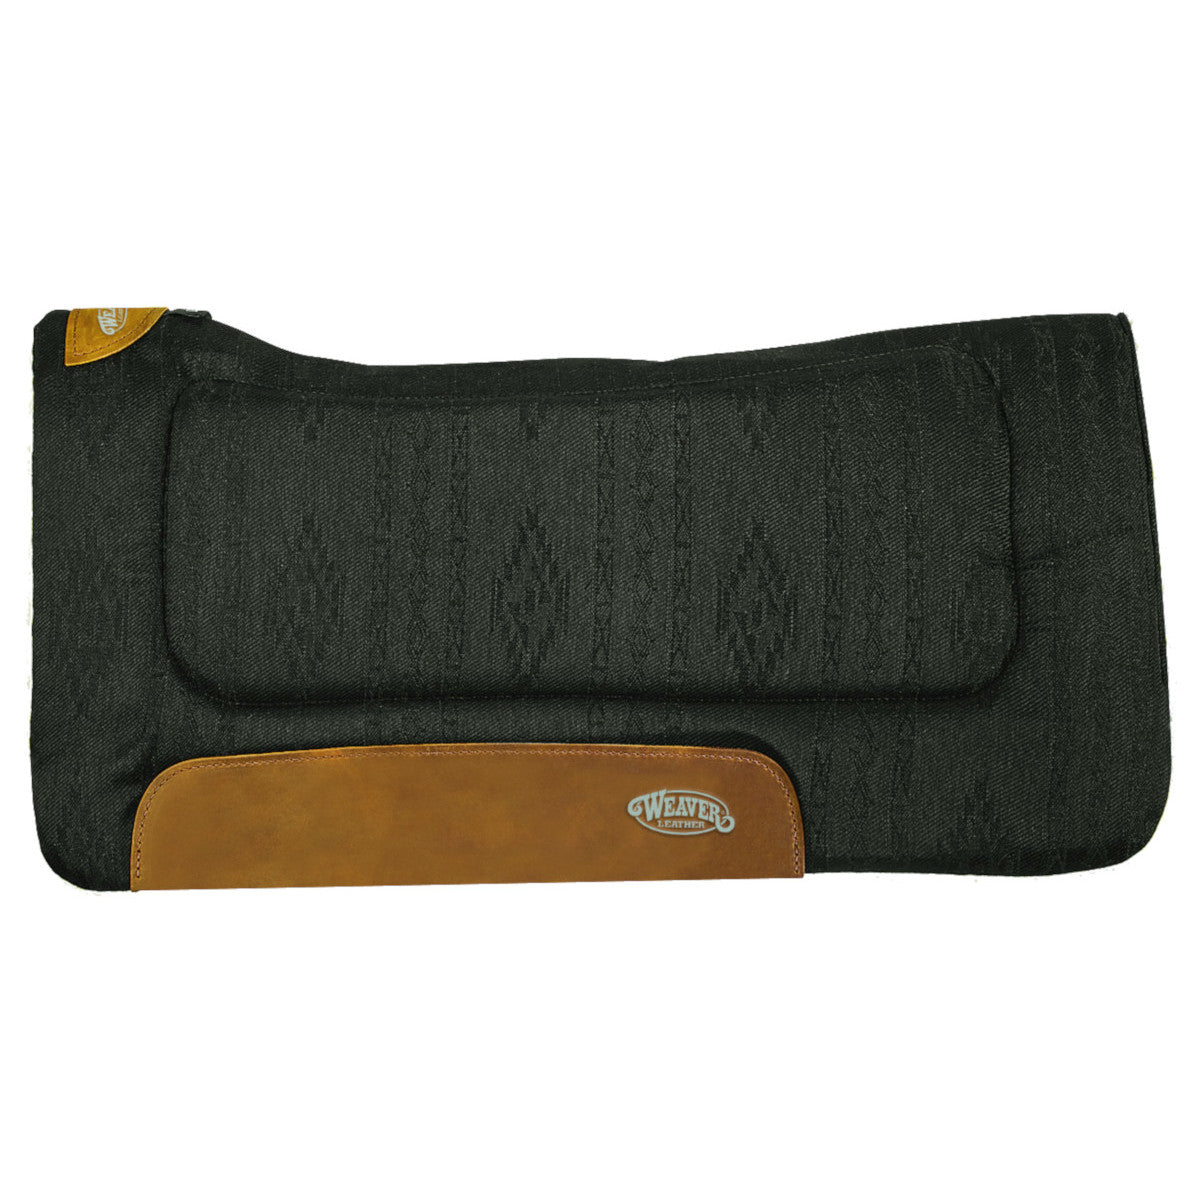 "Weaver Black Contoured Herculon Saddle Pad - 30""x30"""